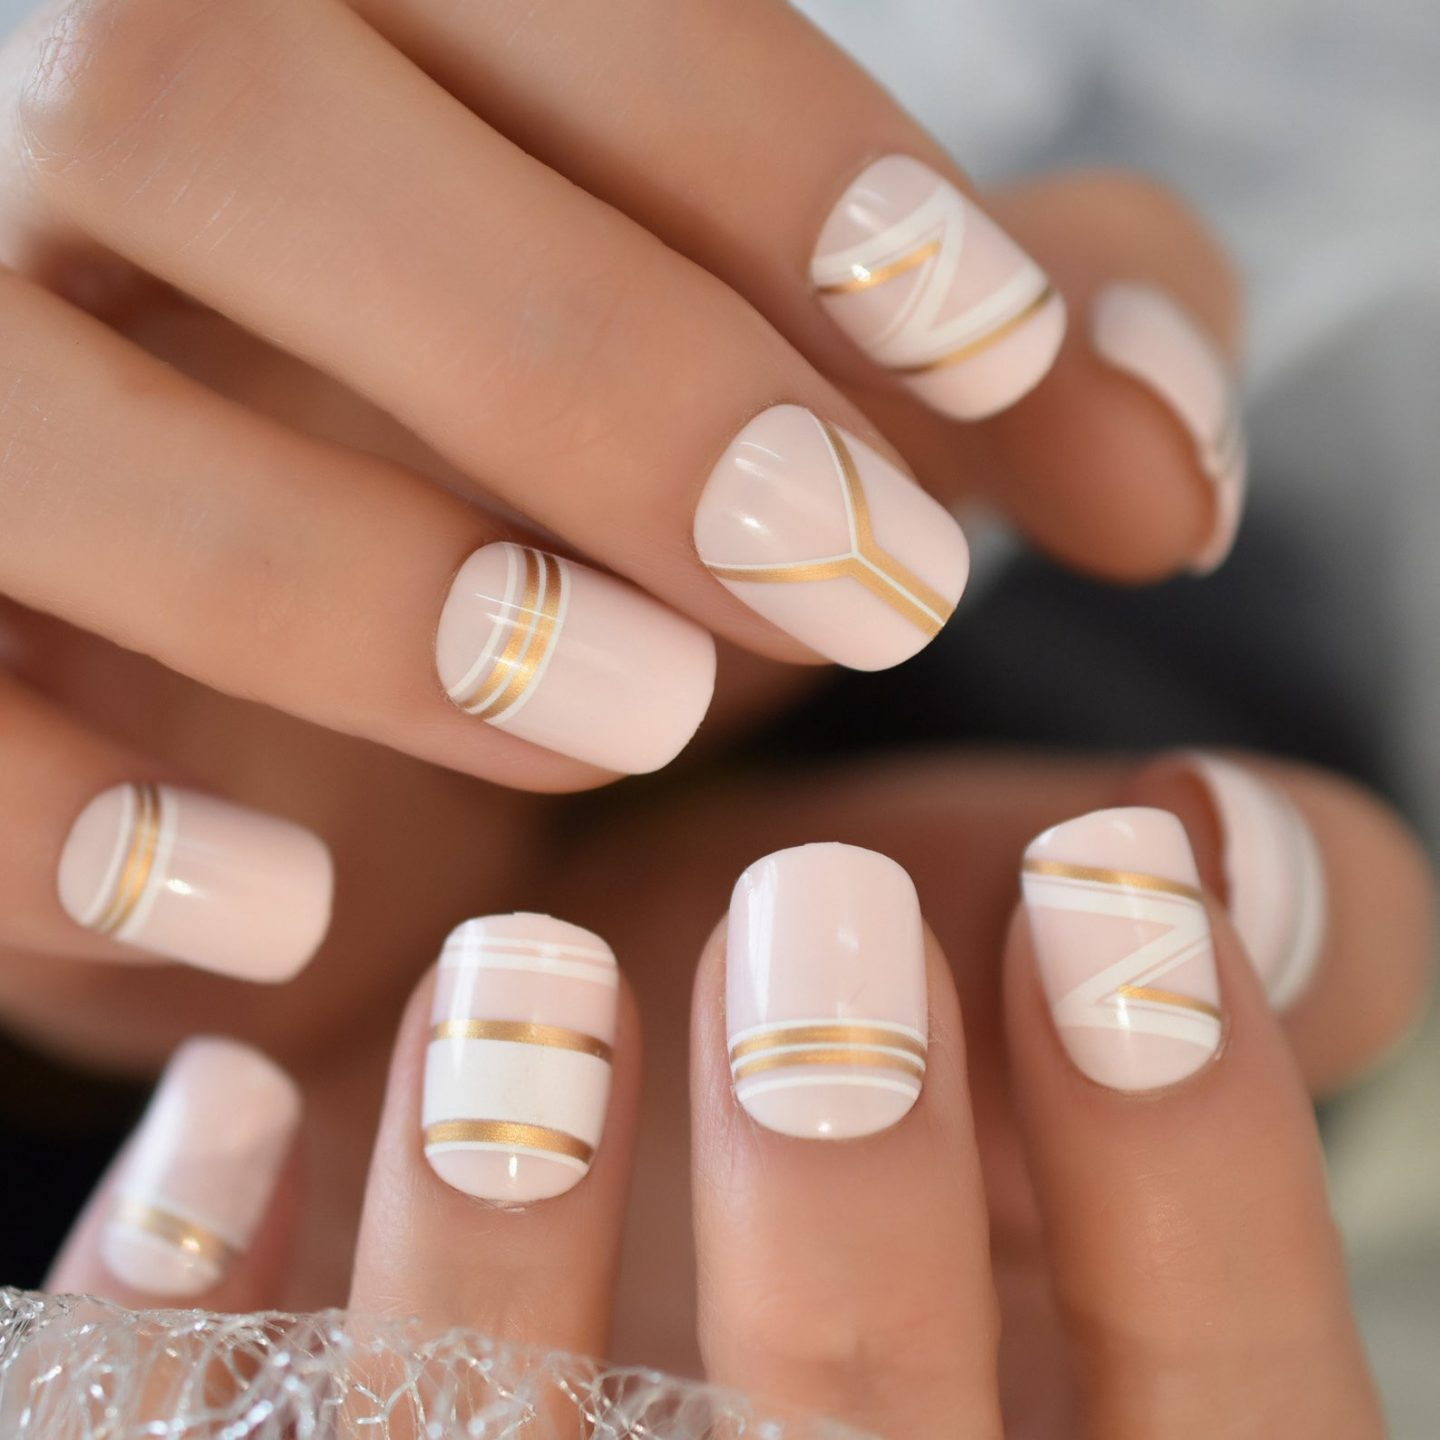 Short light pink and gold nails